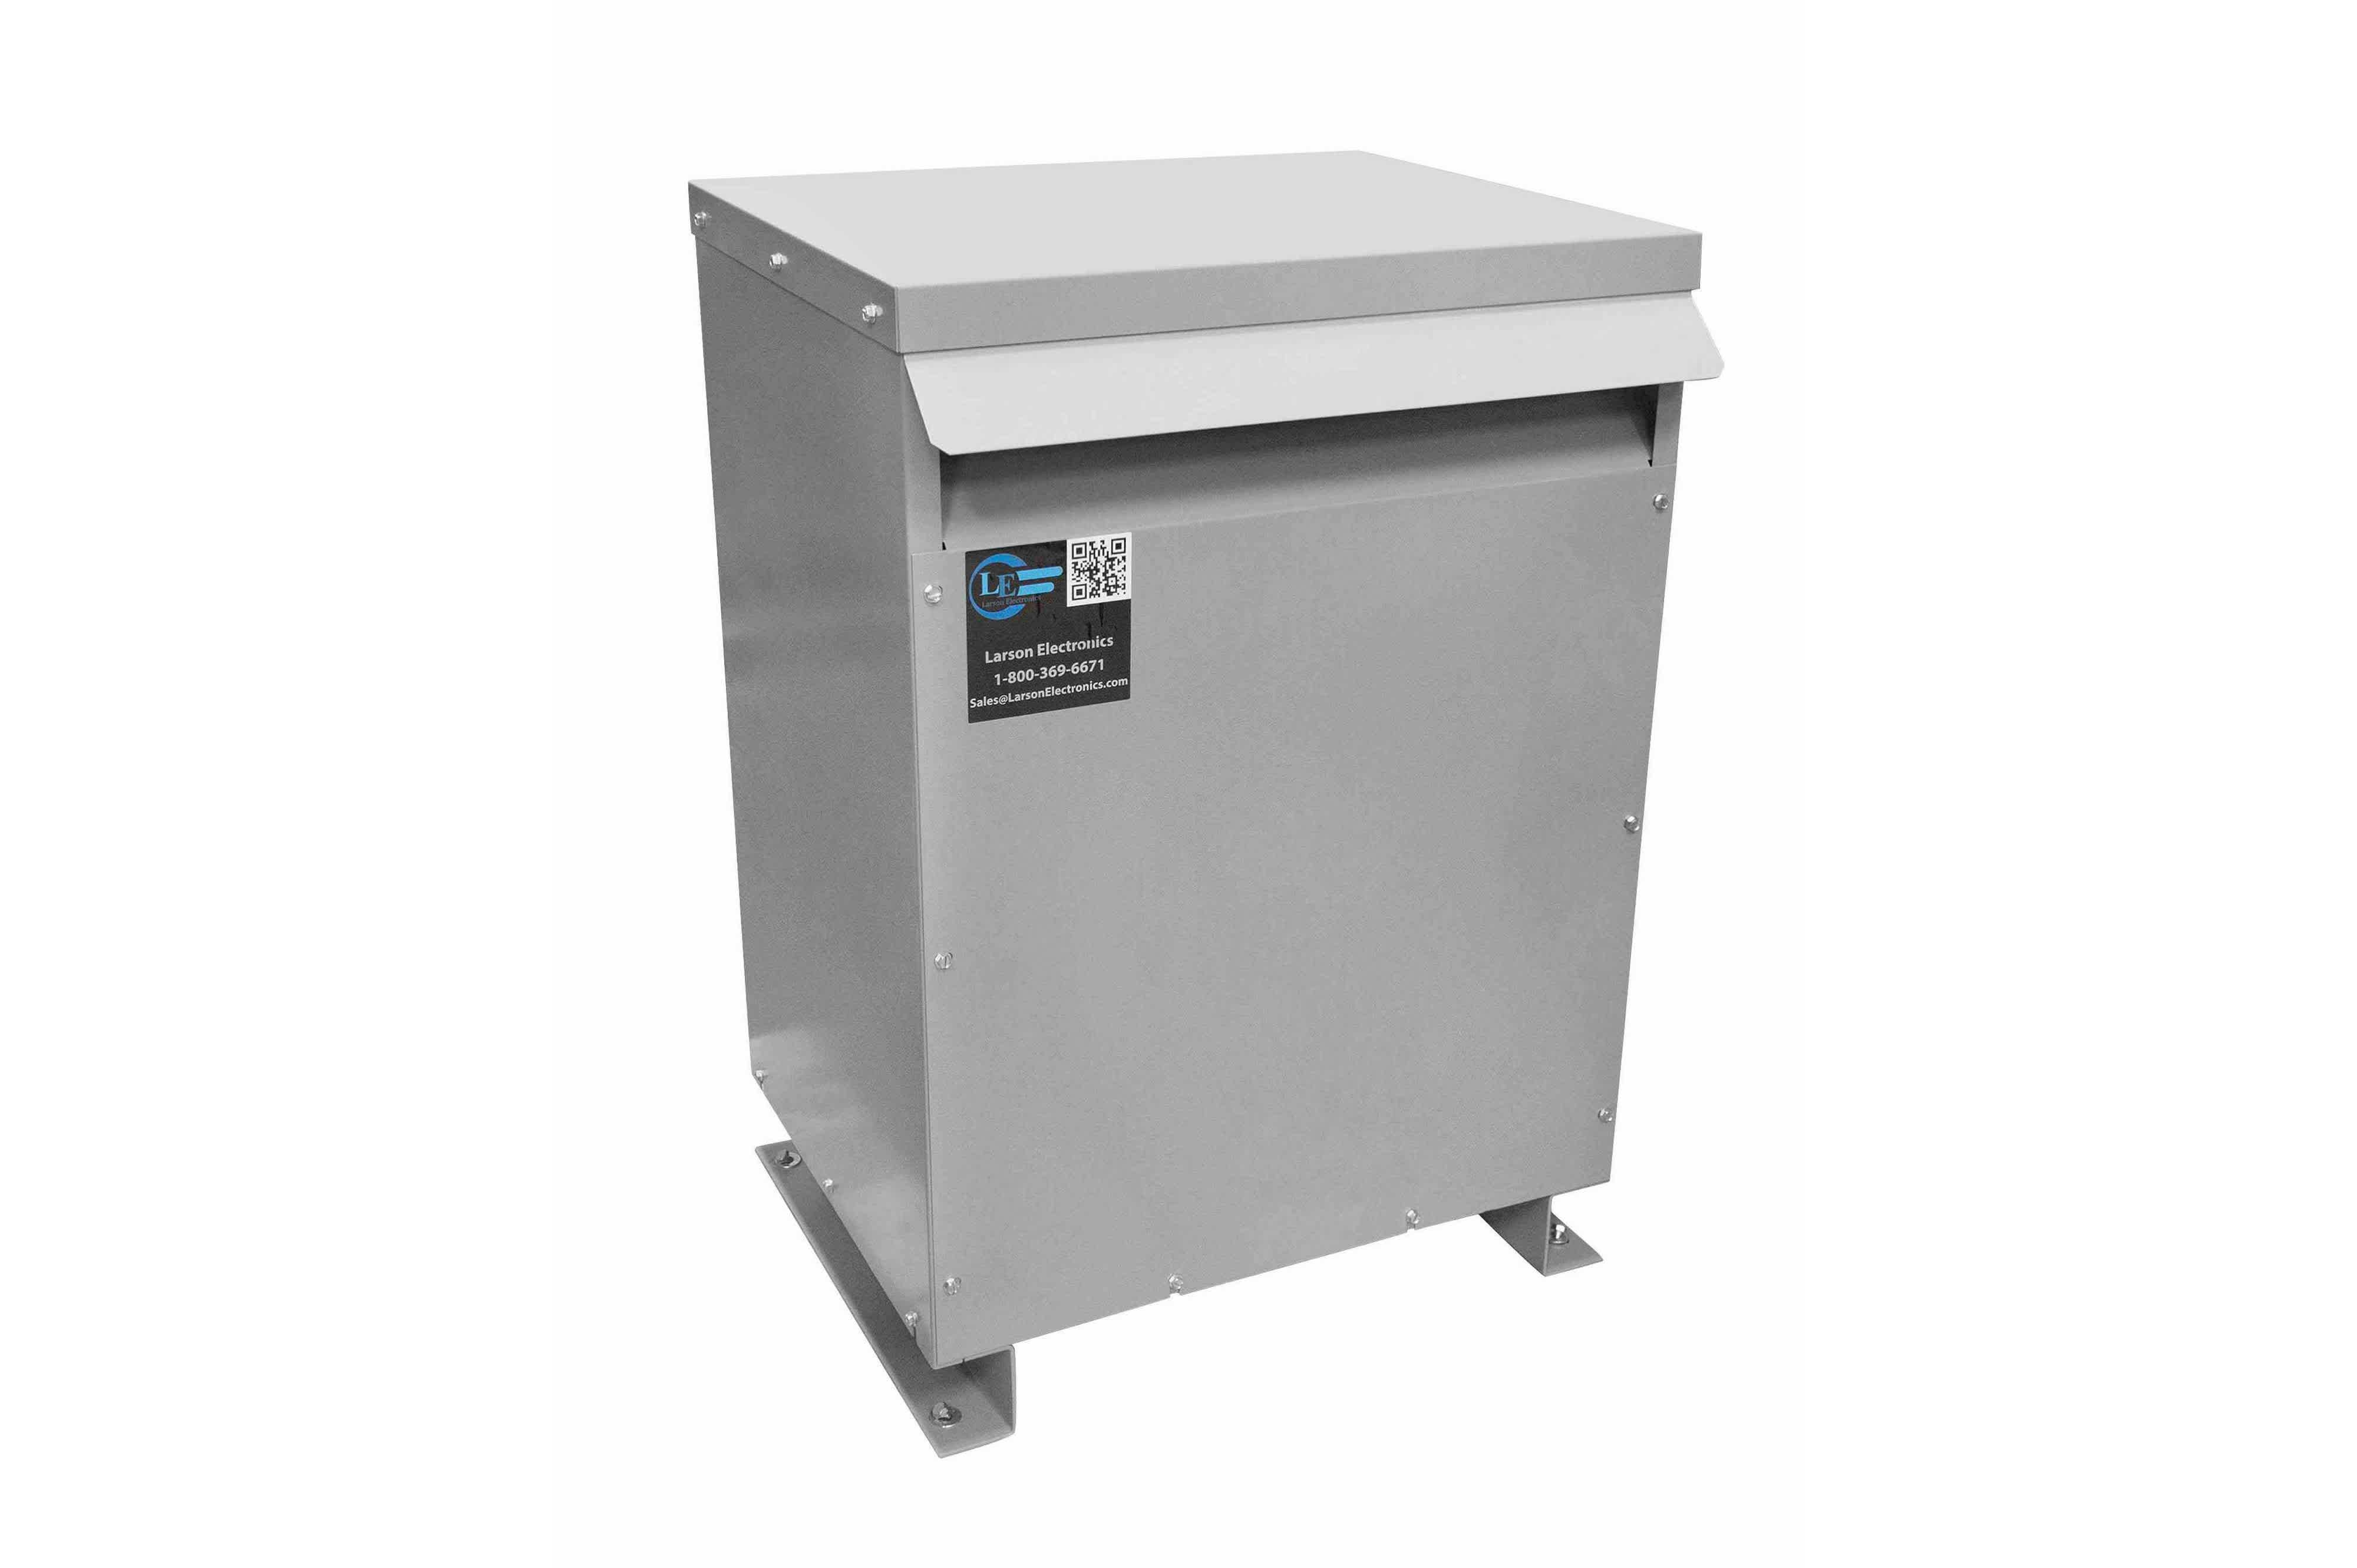 10 kVA 3PH Isolation Transformer, 400V Delta Primary, 600V Delta Secondary, N3R, Ventilated, 60 Hz